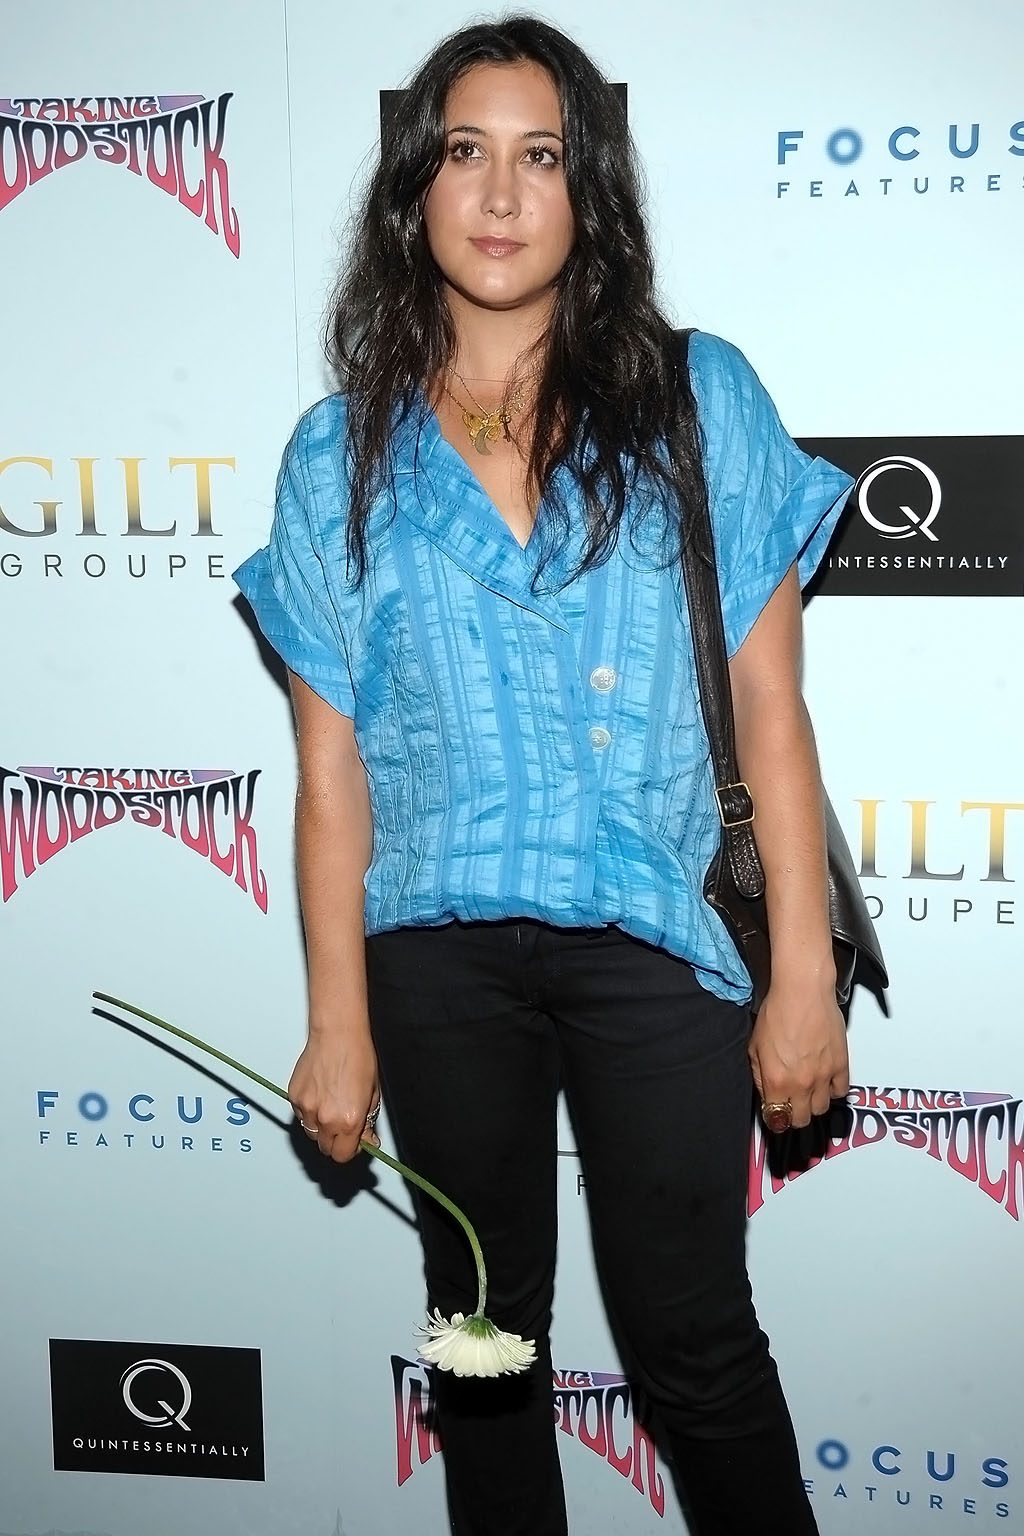 Vanessa Carlton at NY premiere of TAKING WOODSTOCK on July 29, 2009 at Landmark's Sunshine Cinema